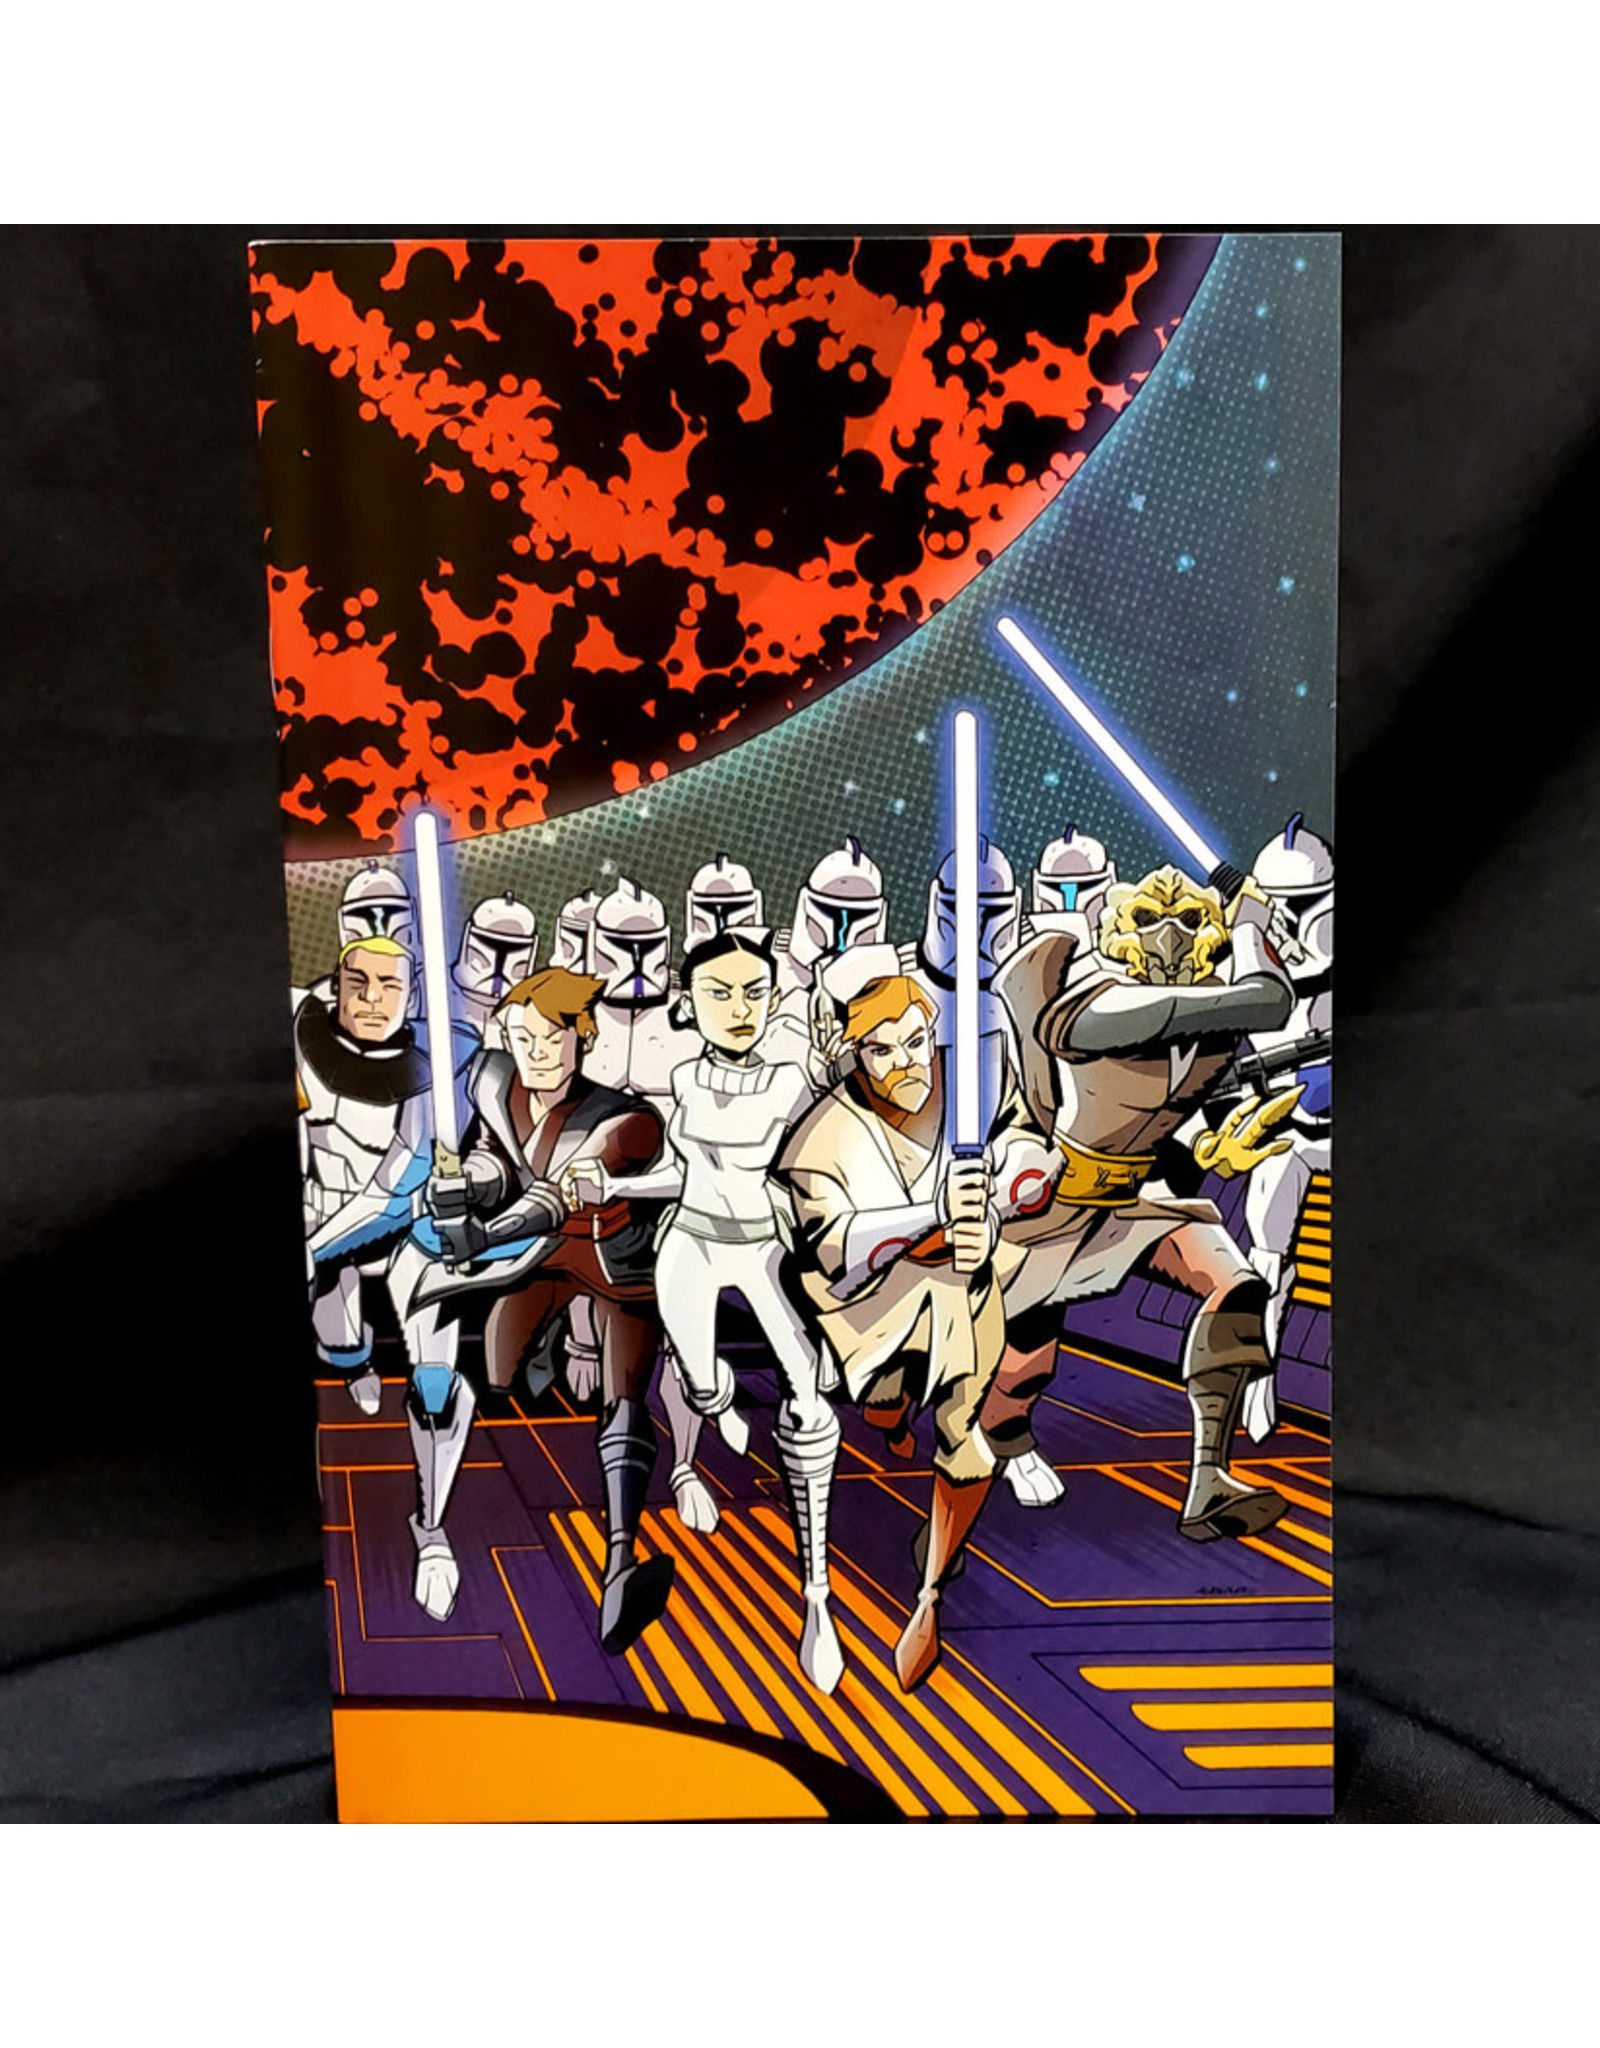 IDW PUBLISHING STAR WARS ADVENTURES CLONE WARS #1 (OF 5) 100 COPY INCENTIVE OEMING